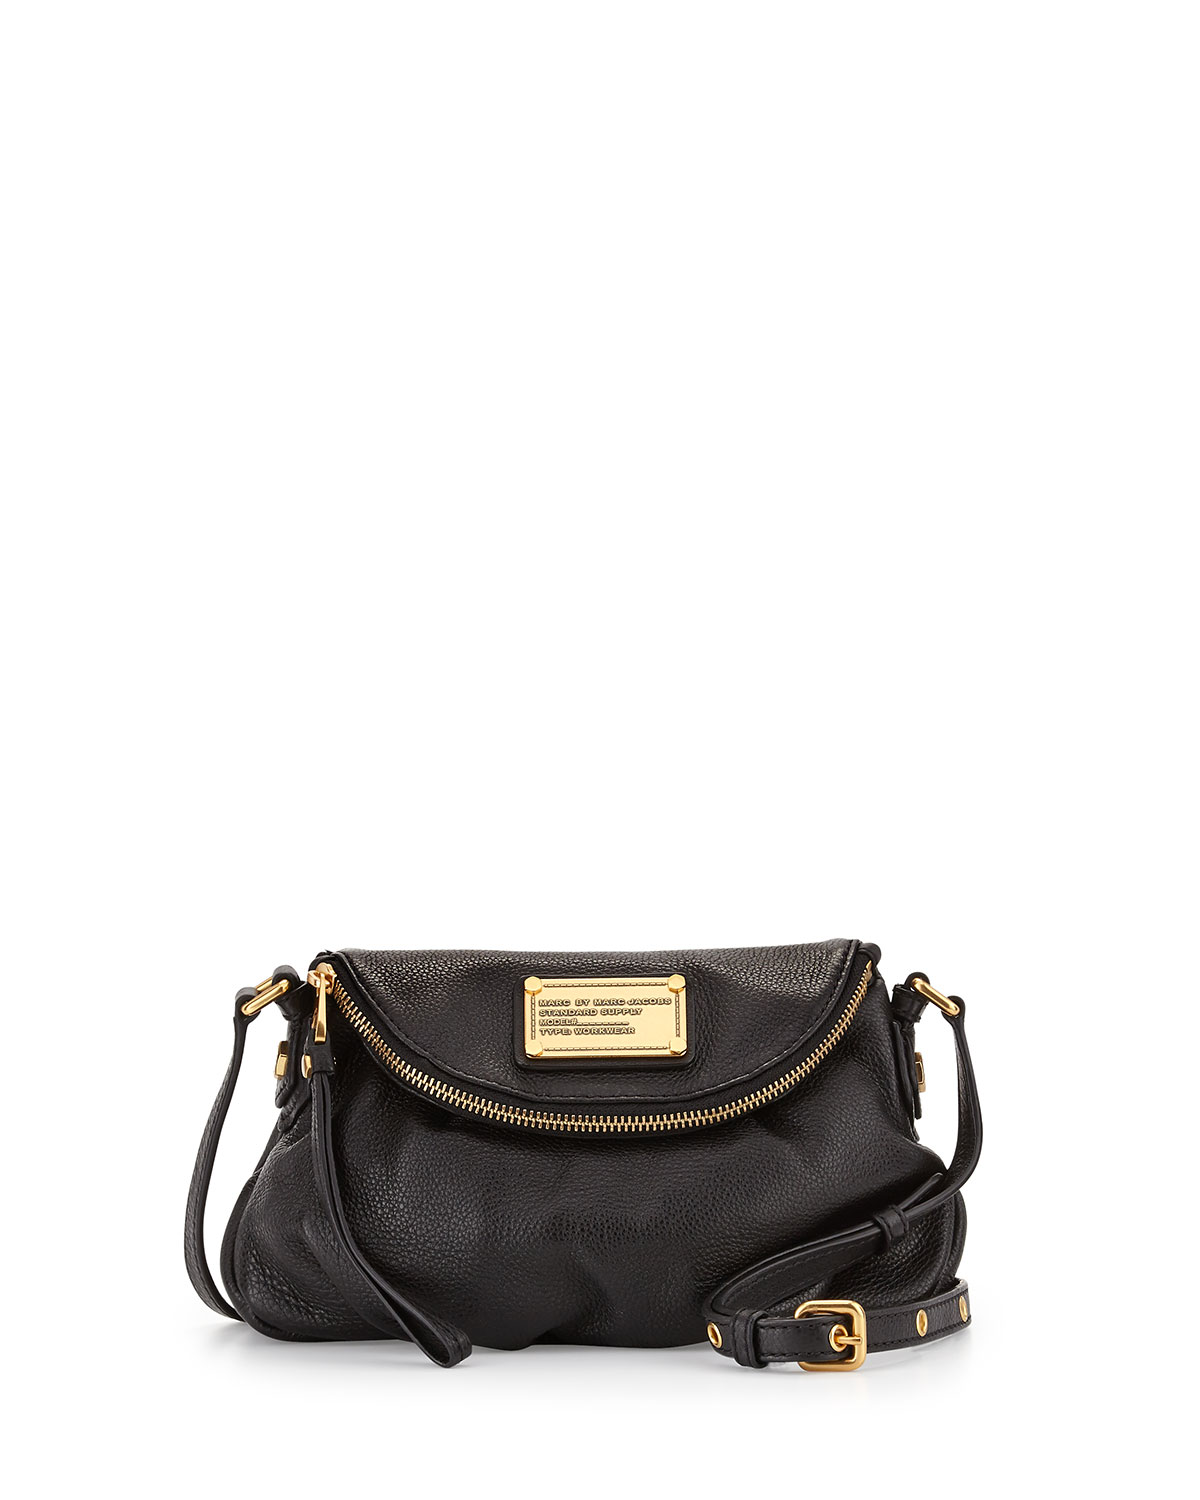 7cd1e2ac63b9 MARC by Marc Jacobs Classic Q Natasha Mini Crossbody Bag